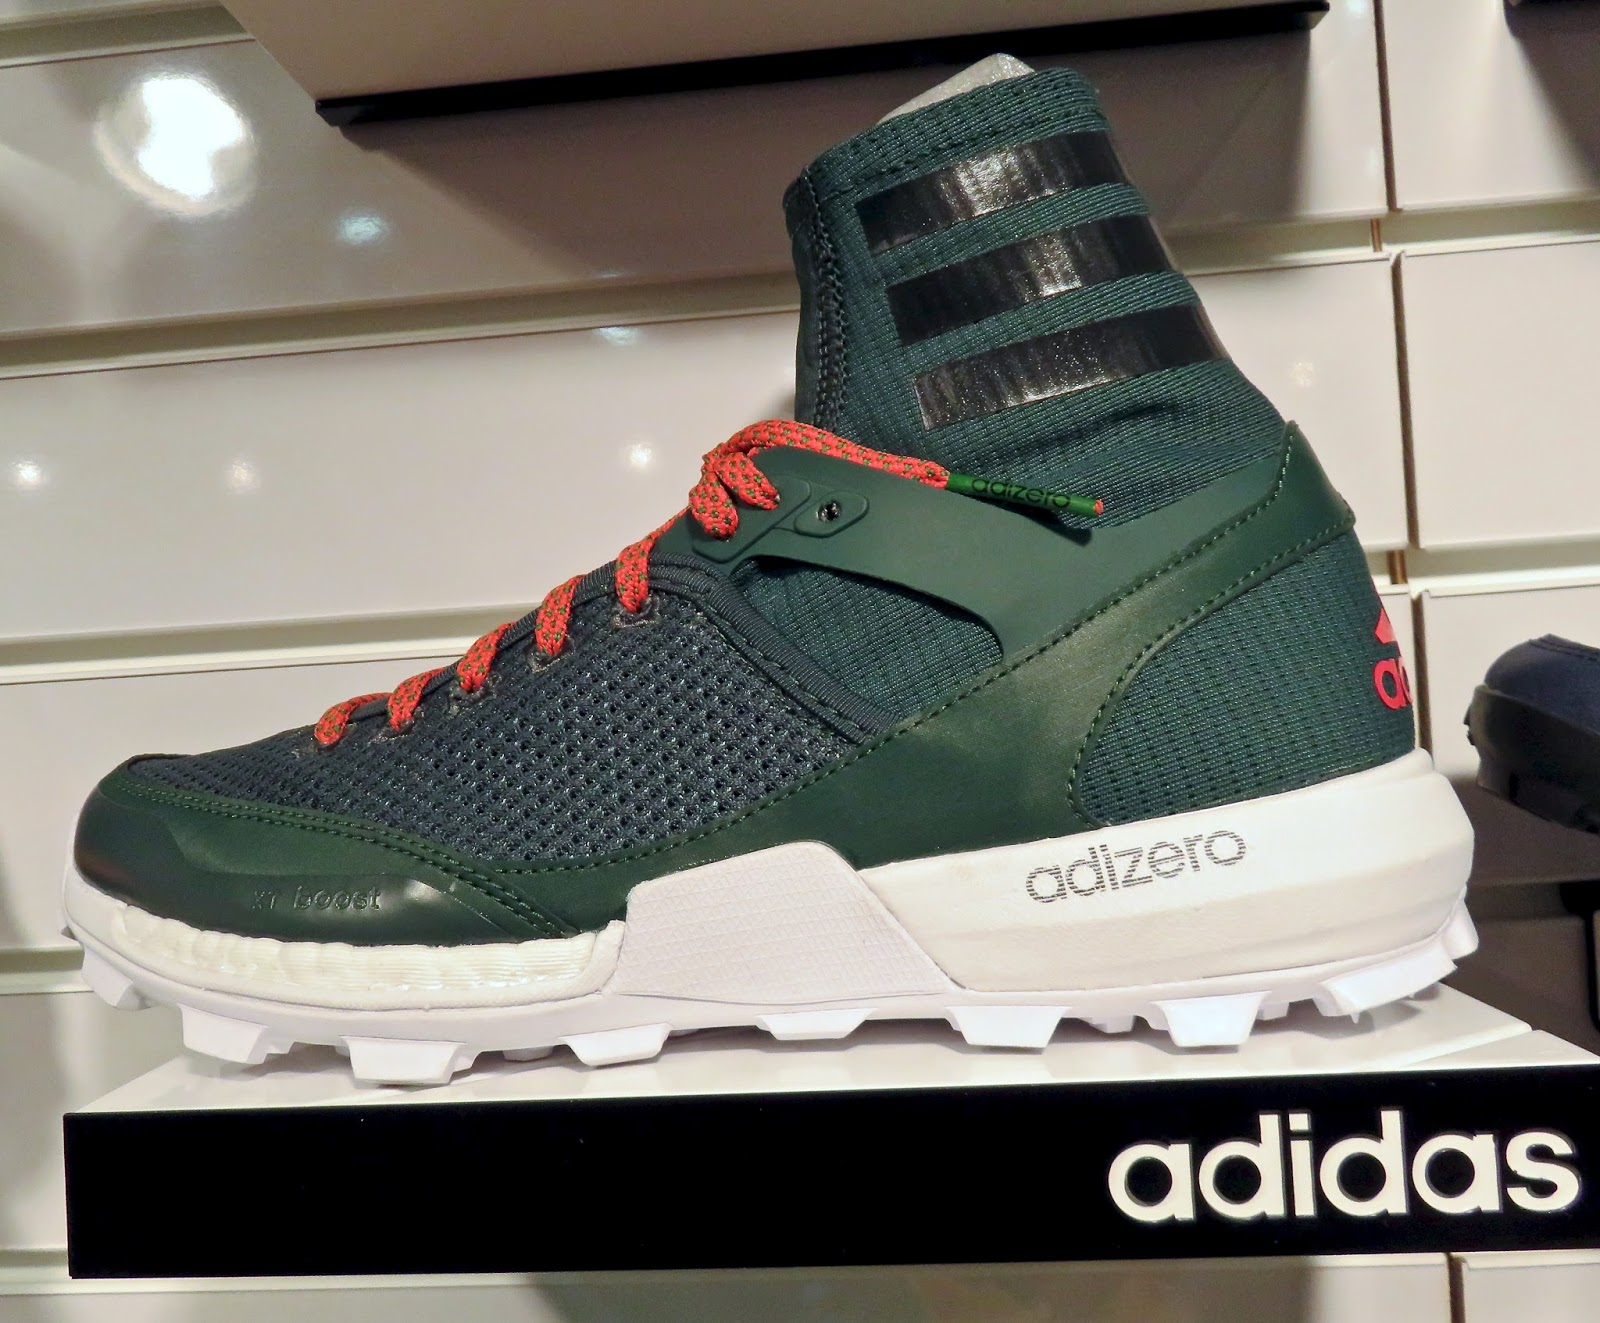 4904d7890cdc0 ADIDAS OUTDOORS -7 Footwear Styles- Fresh Updates  Trails+Street  Spring 16